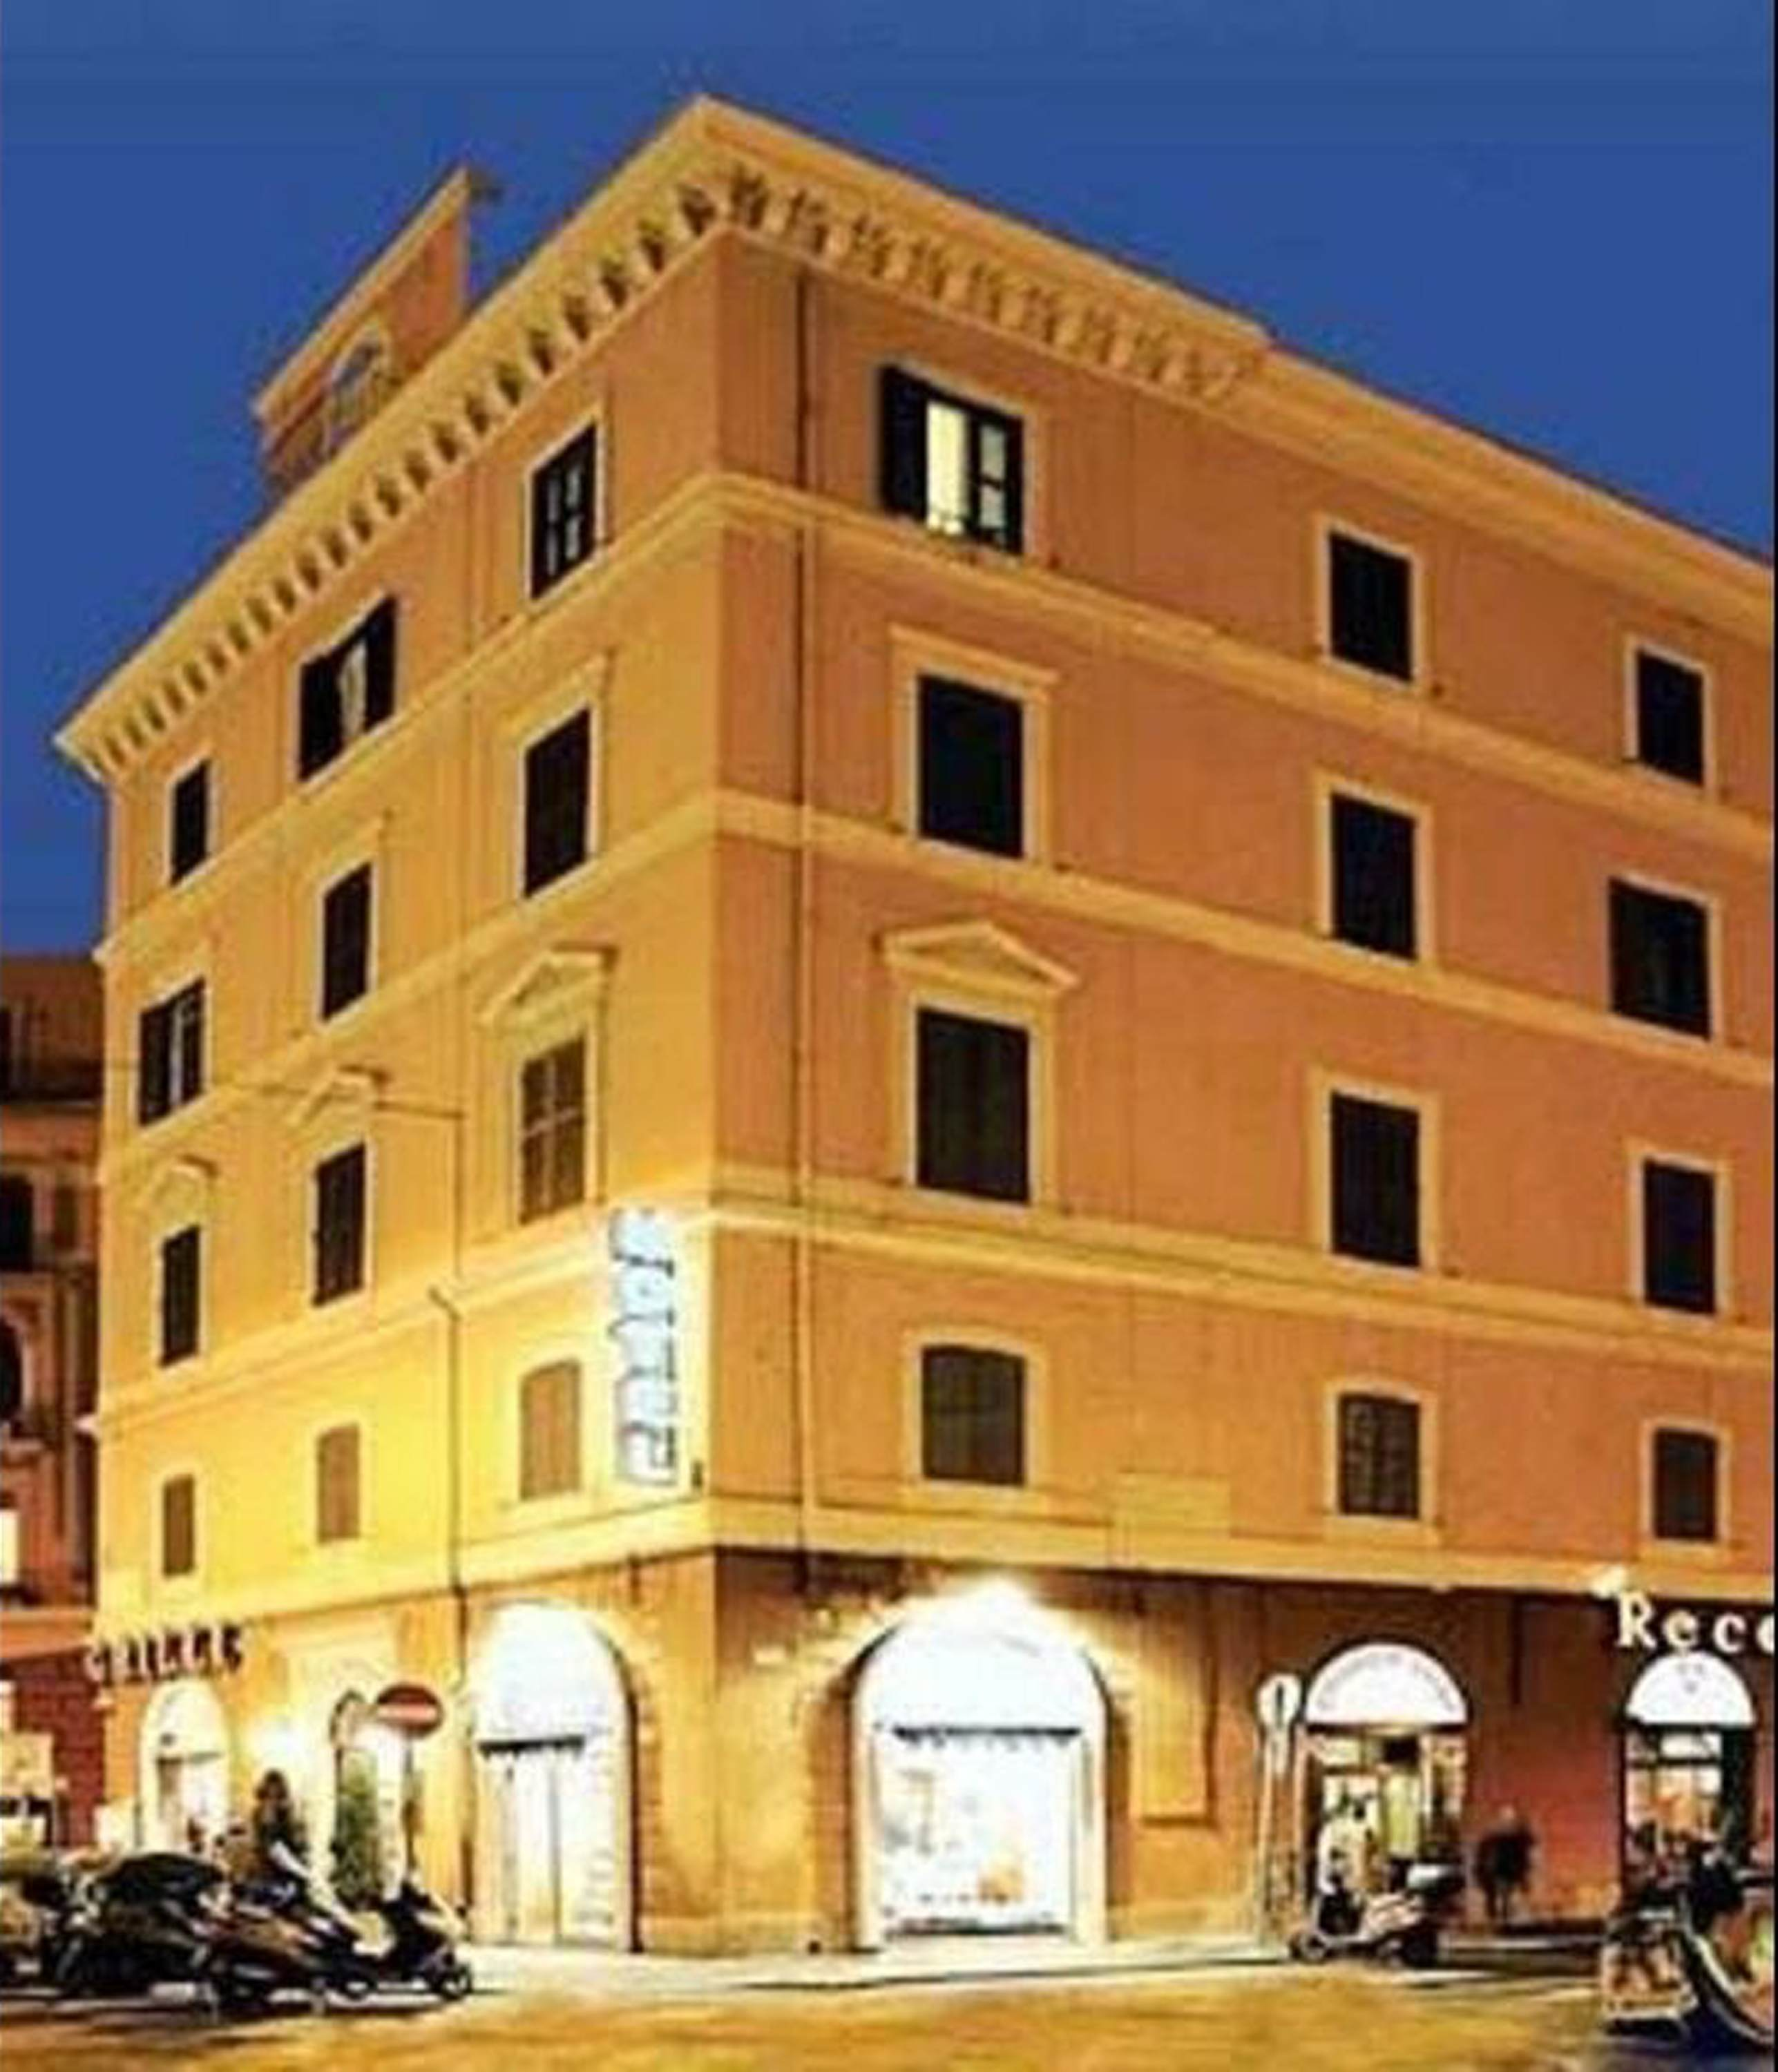 Hotel Lirico Roma Booking